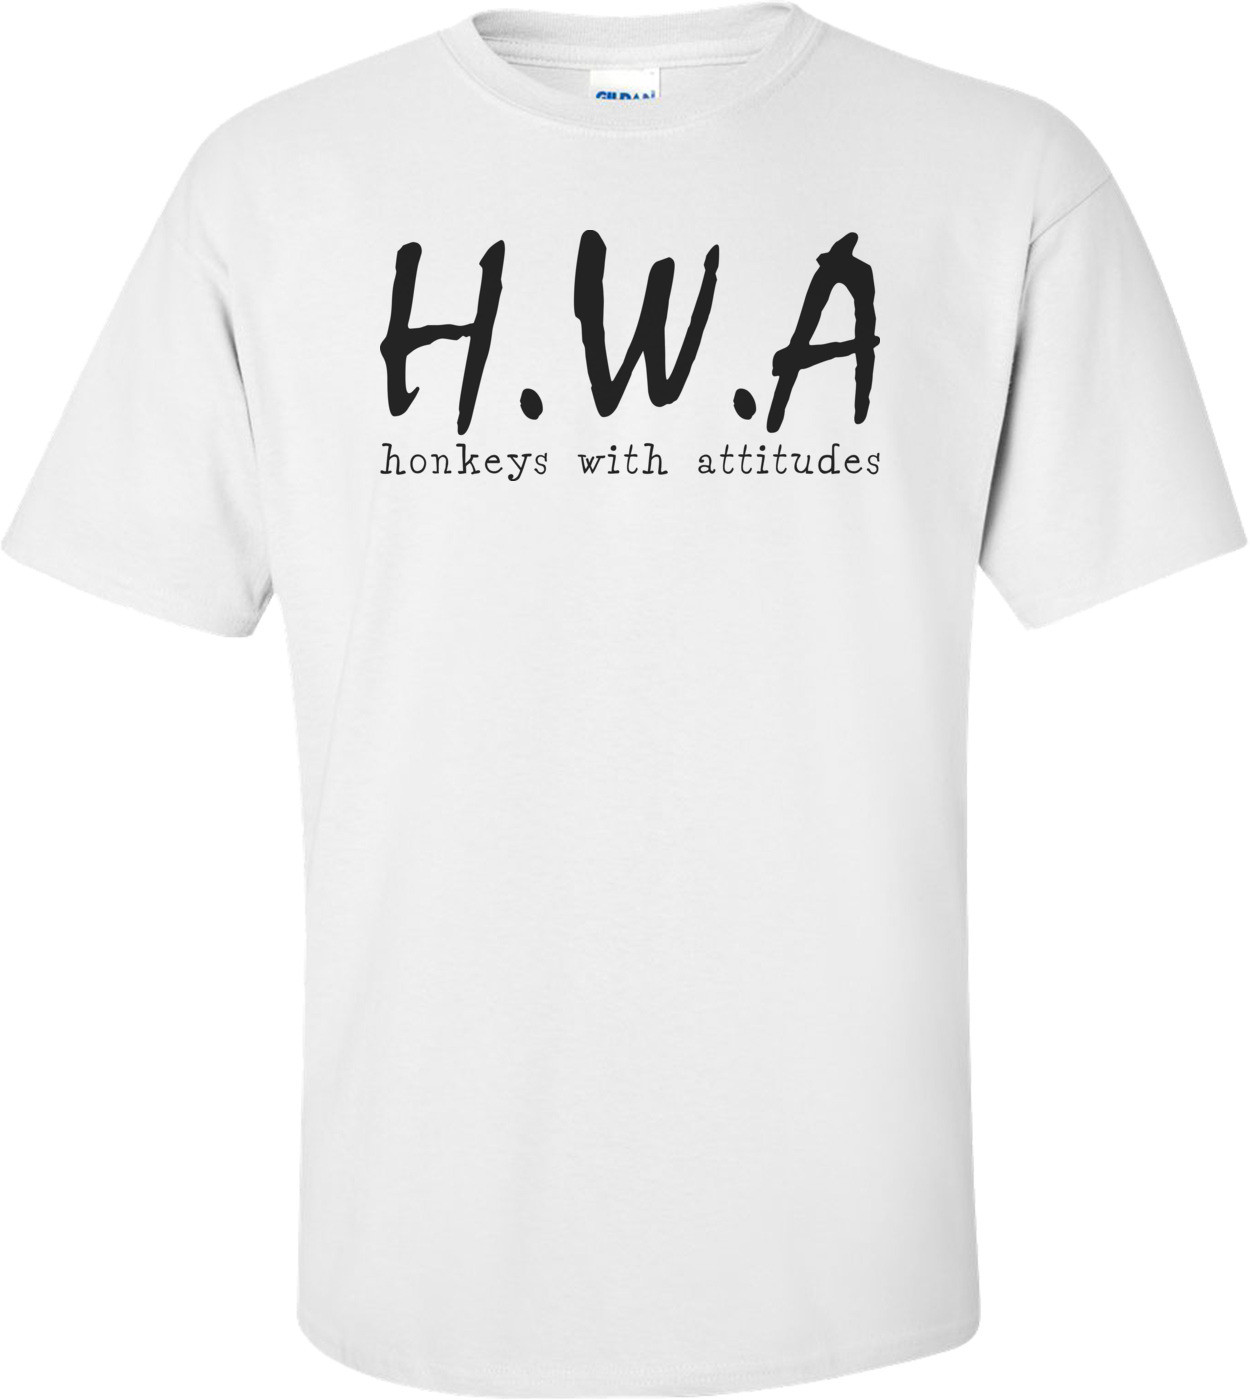 Hwa - Honkeys With Attitude Funny Shirt